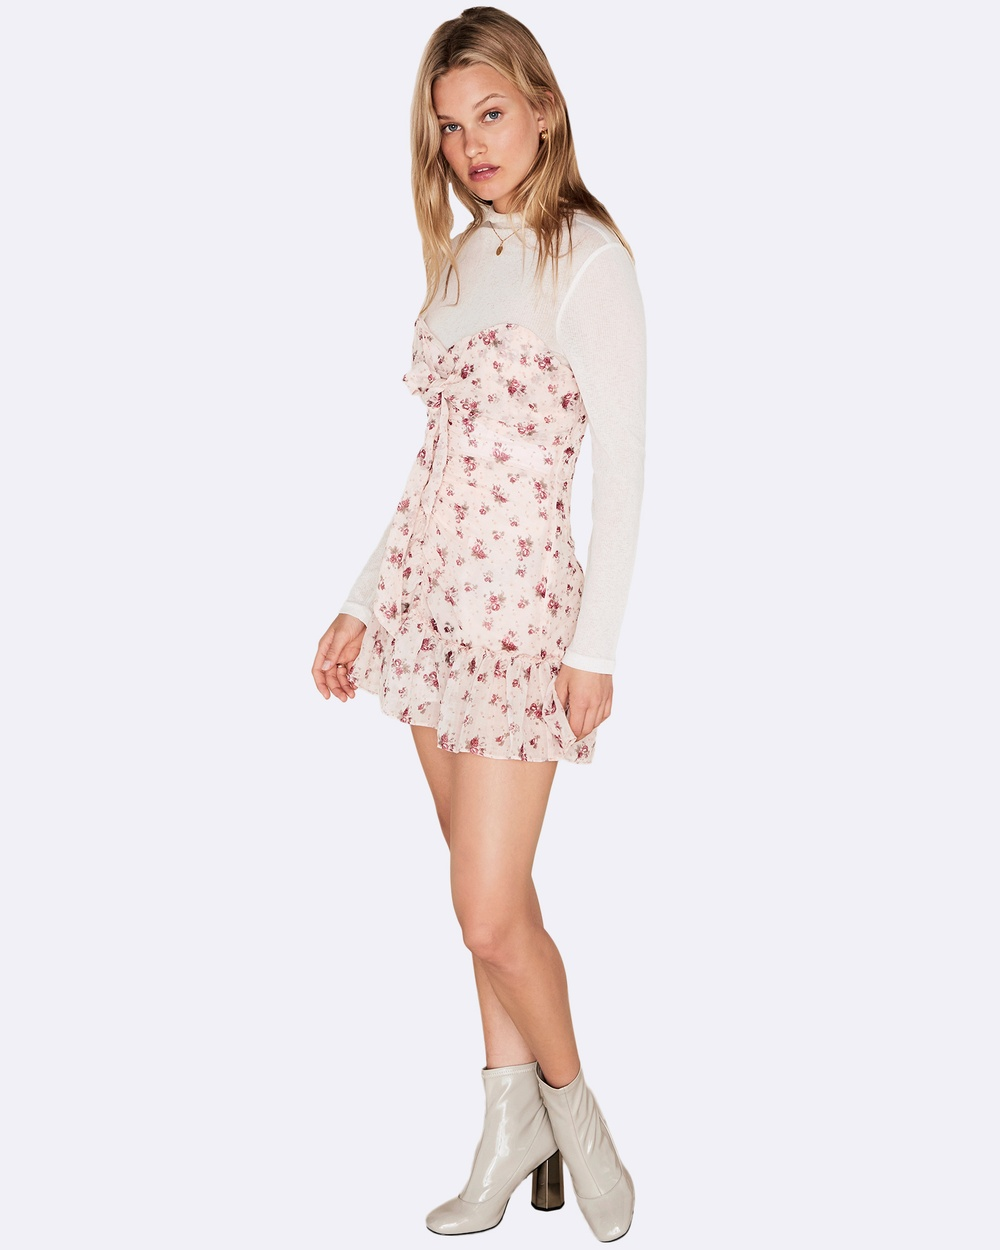 The East Order Lila Mini Dress Dresses Pink Lila Mini Dress